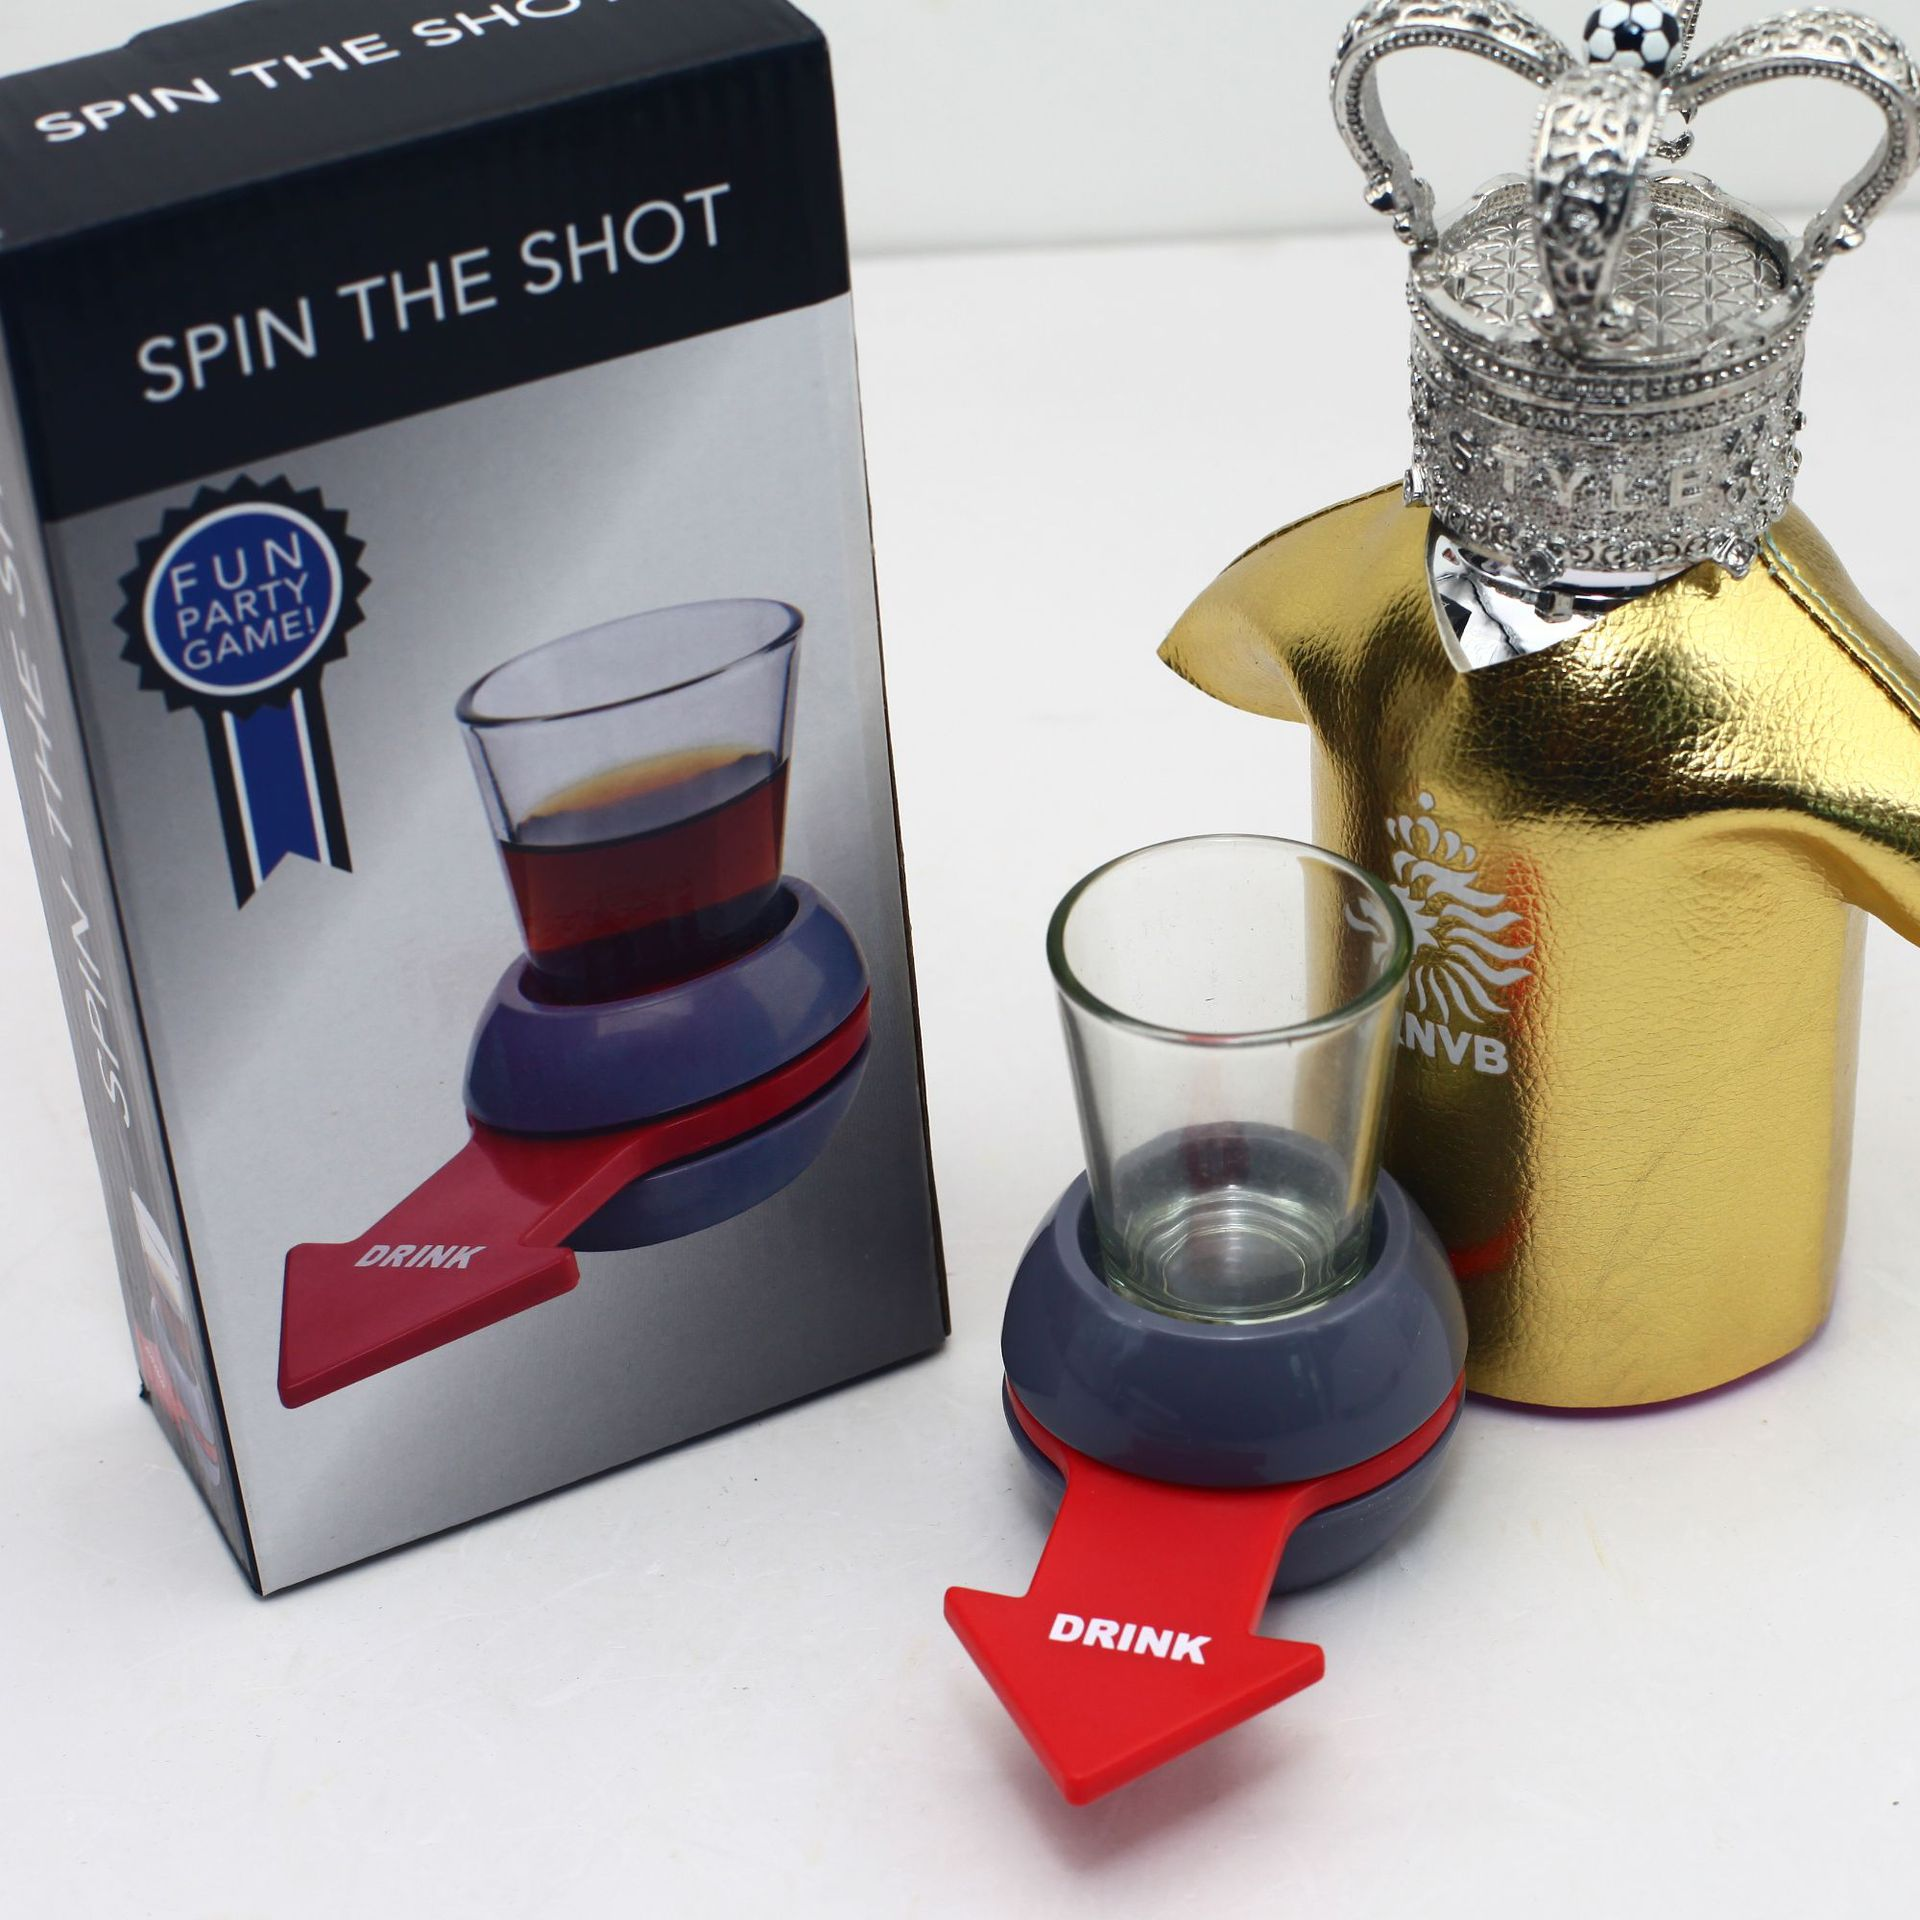 Spin The Shot Drinking Game Turntable Roulette Glass Spinning Fun Party Home Adult Toys Novelty Glass Drinking Game Toys